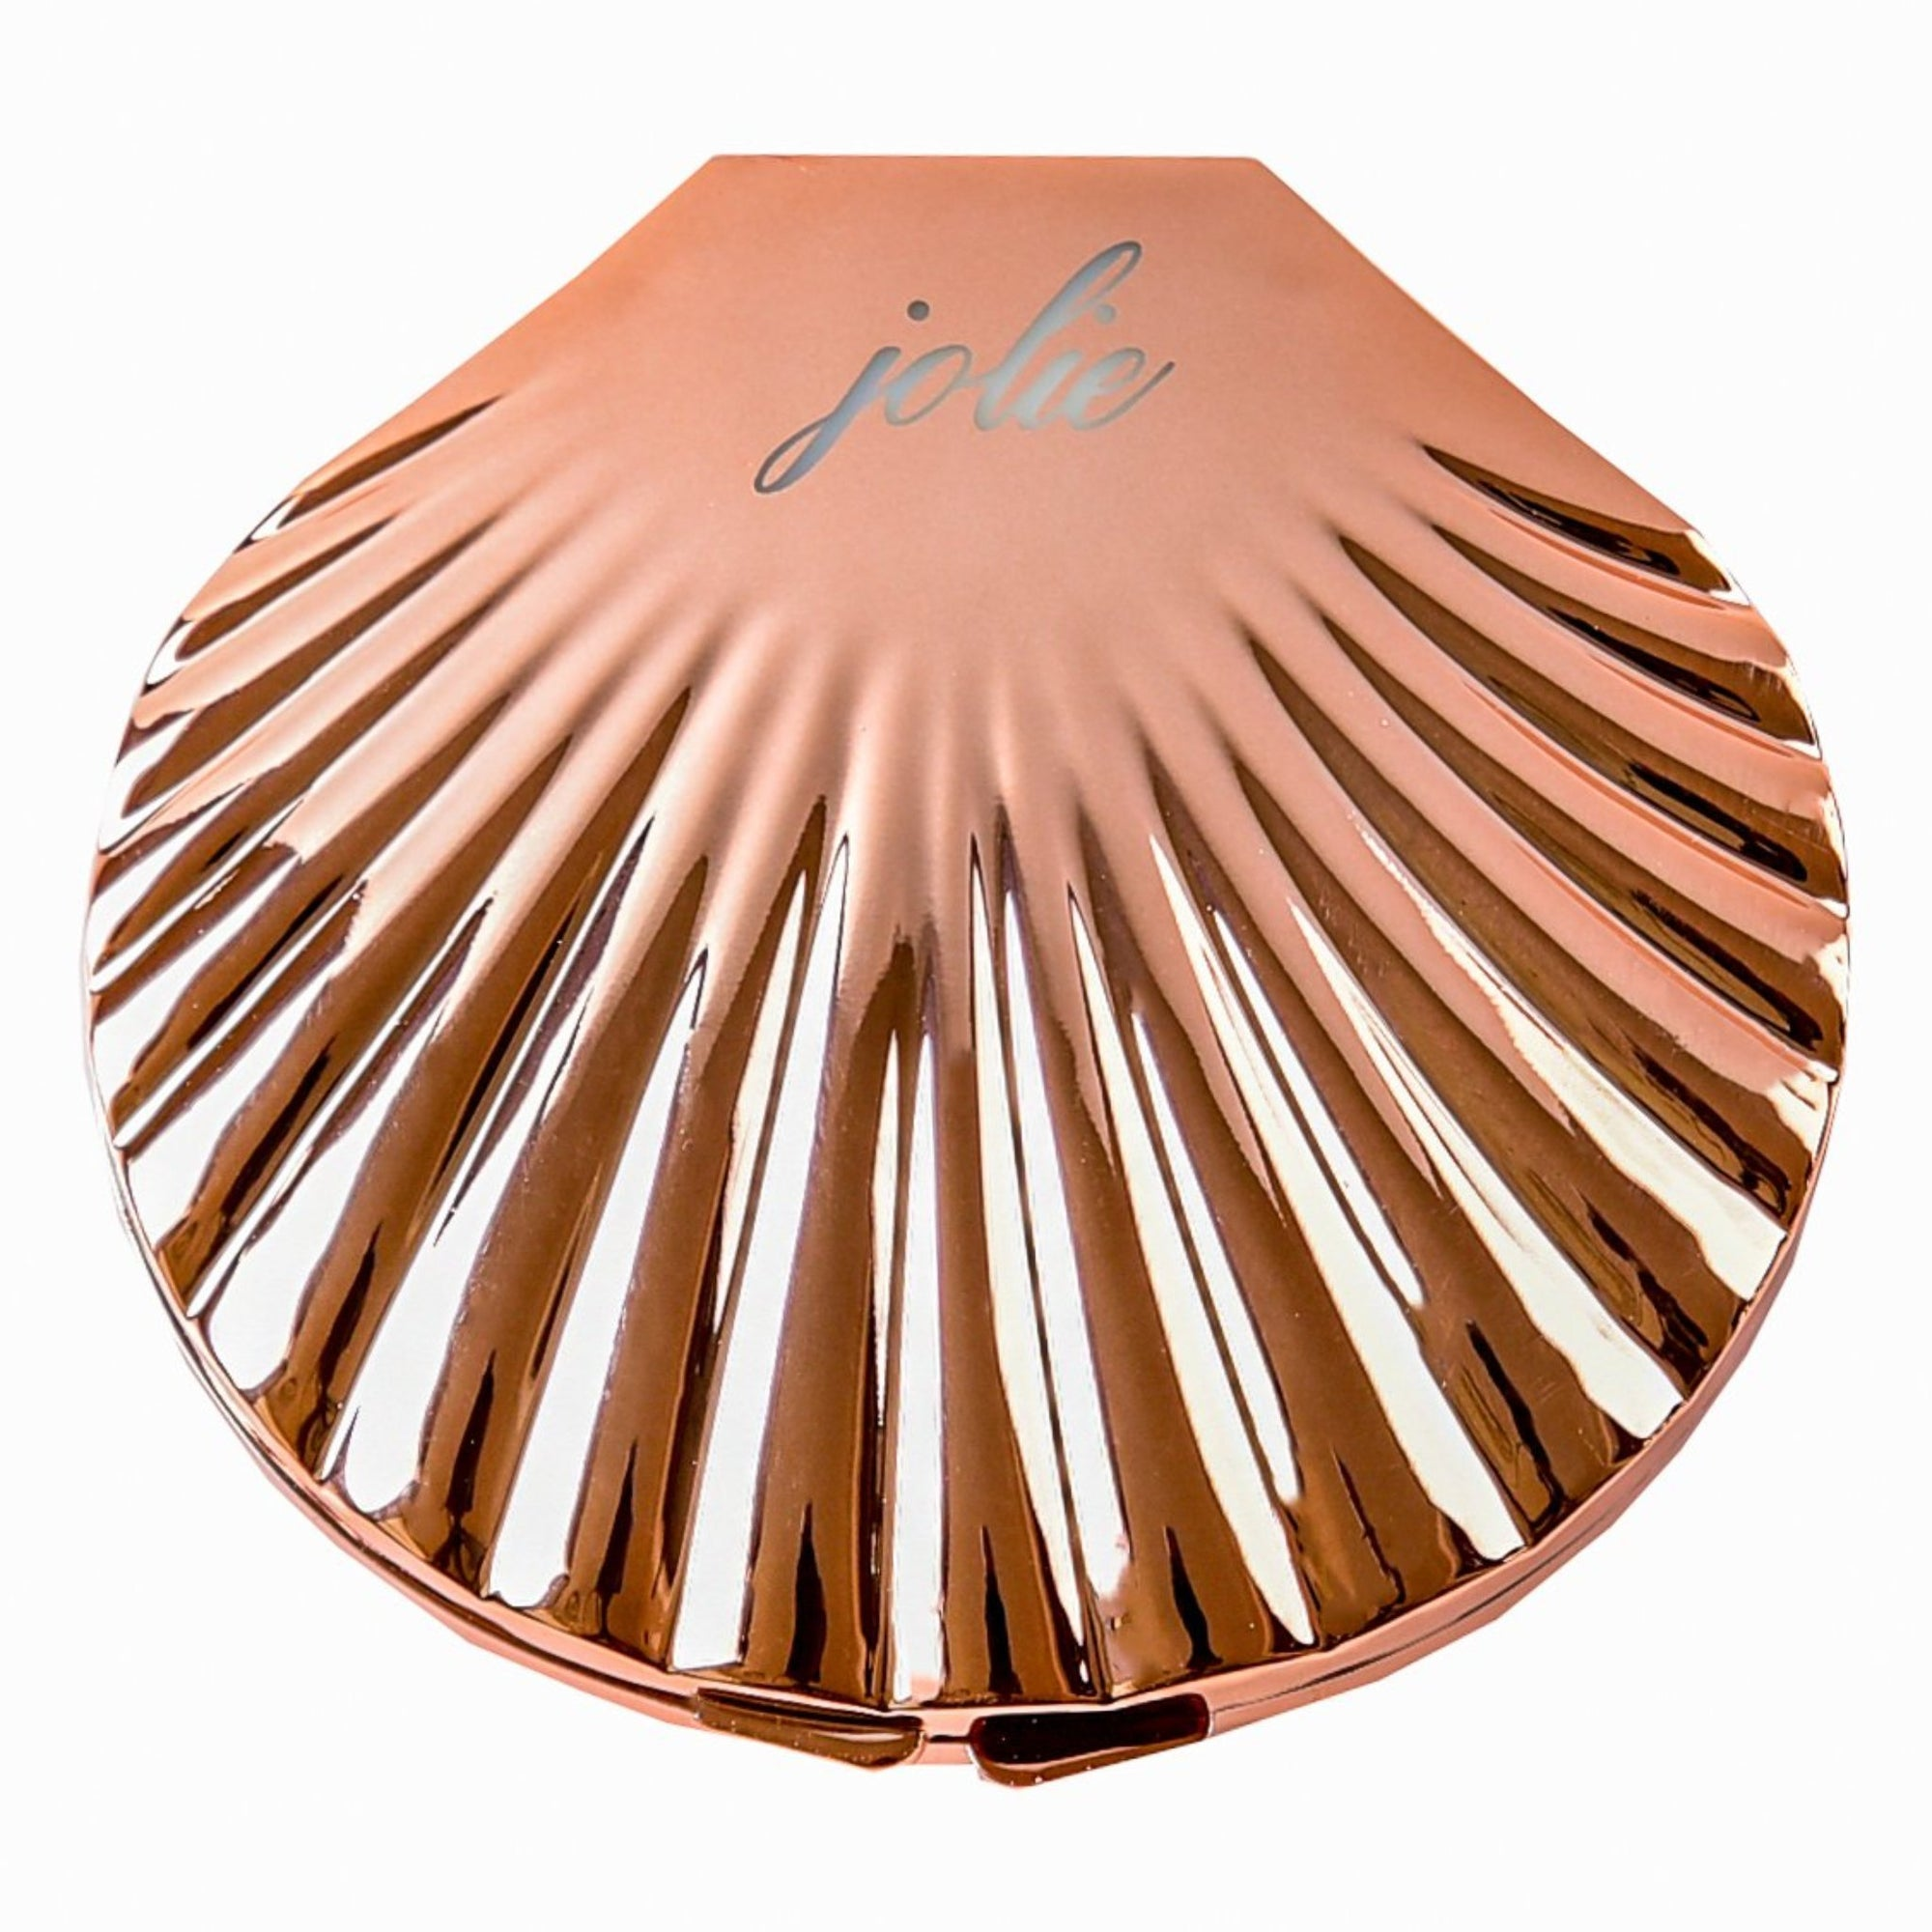 Rose Gold Compact Mermaid Mirror - Jolie Beauty